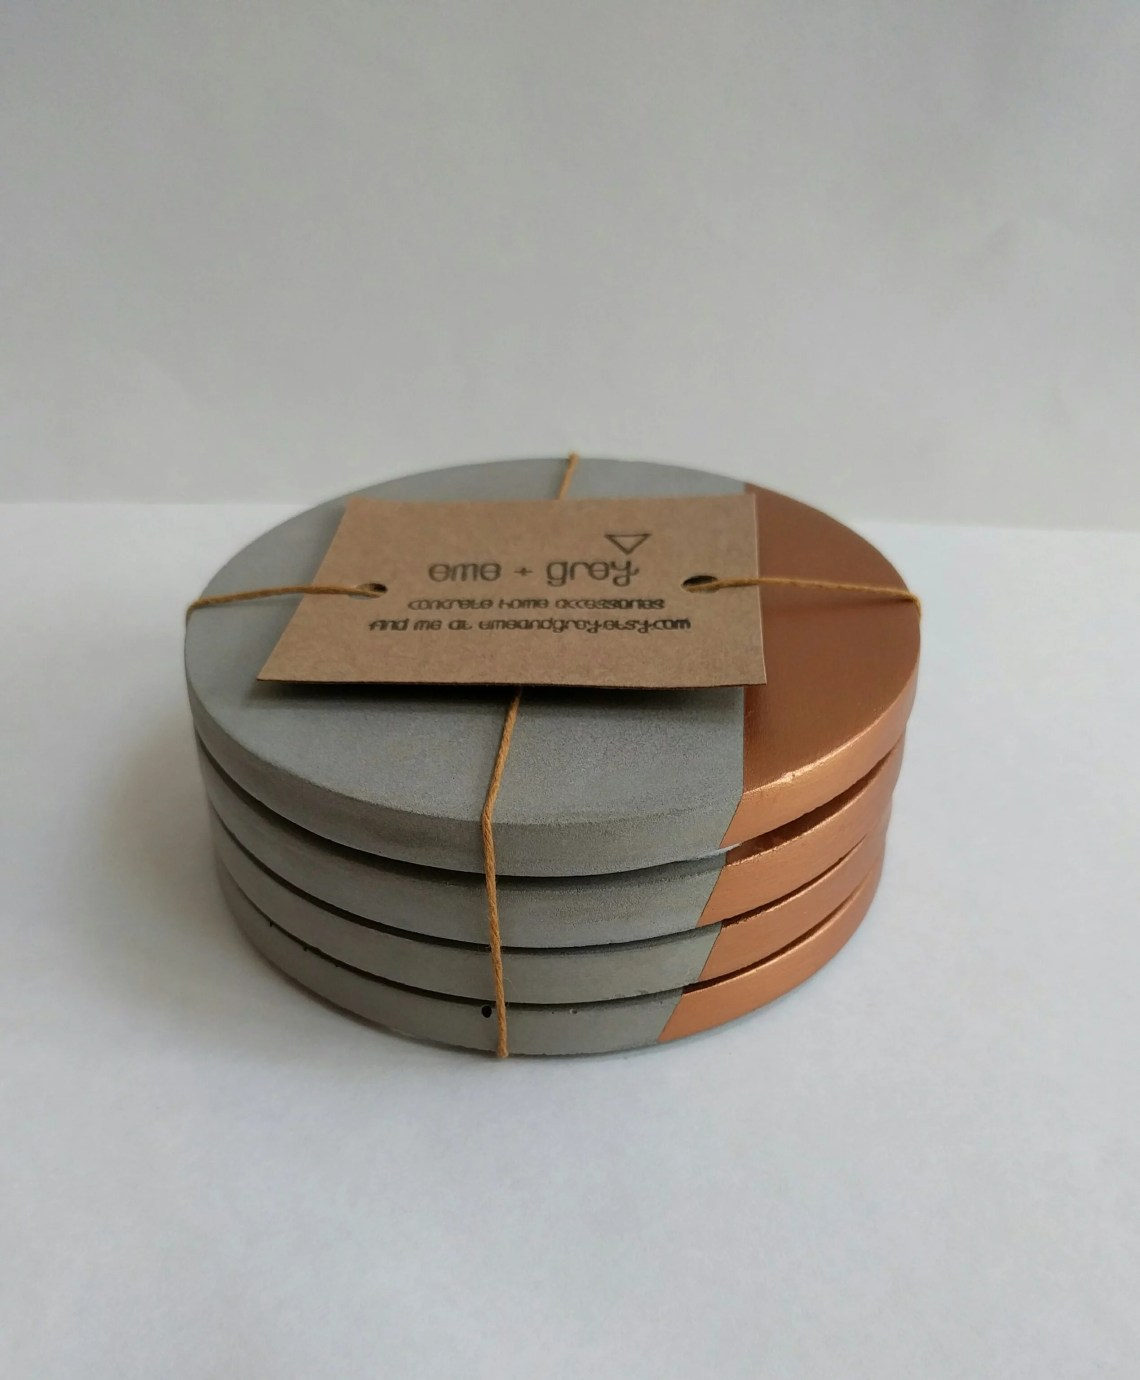 Rose gold and concrete coasters by Eme and Grey